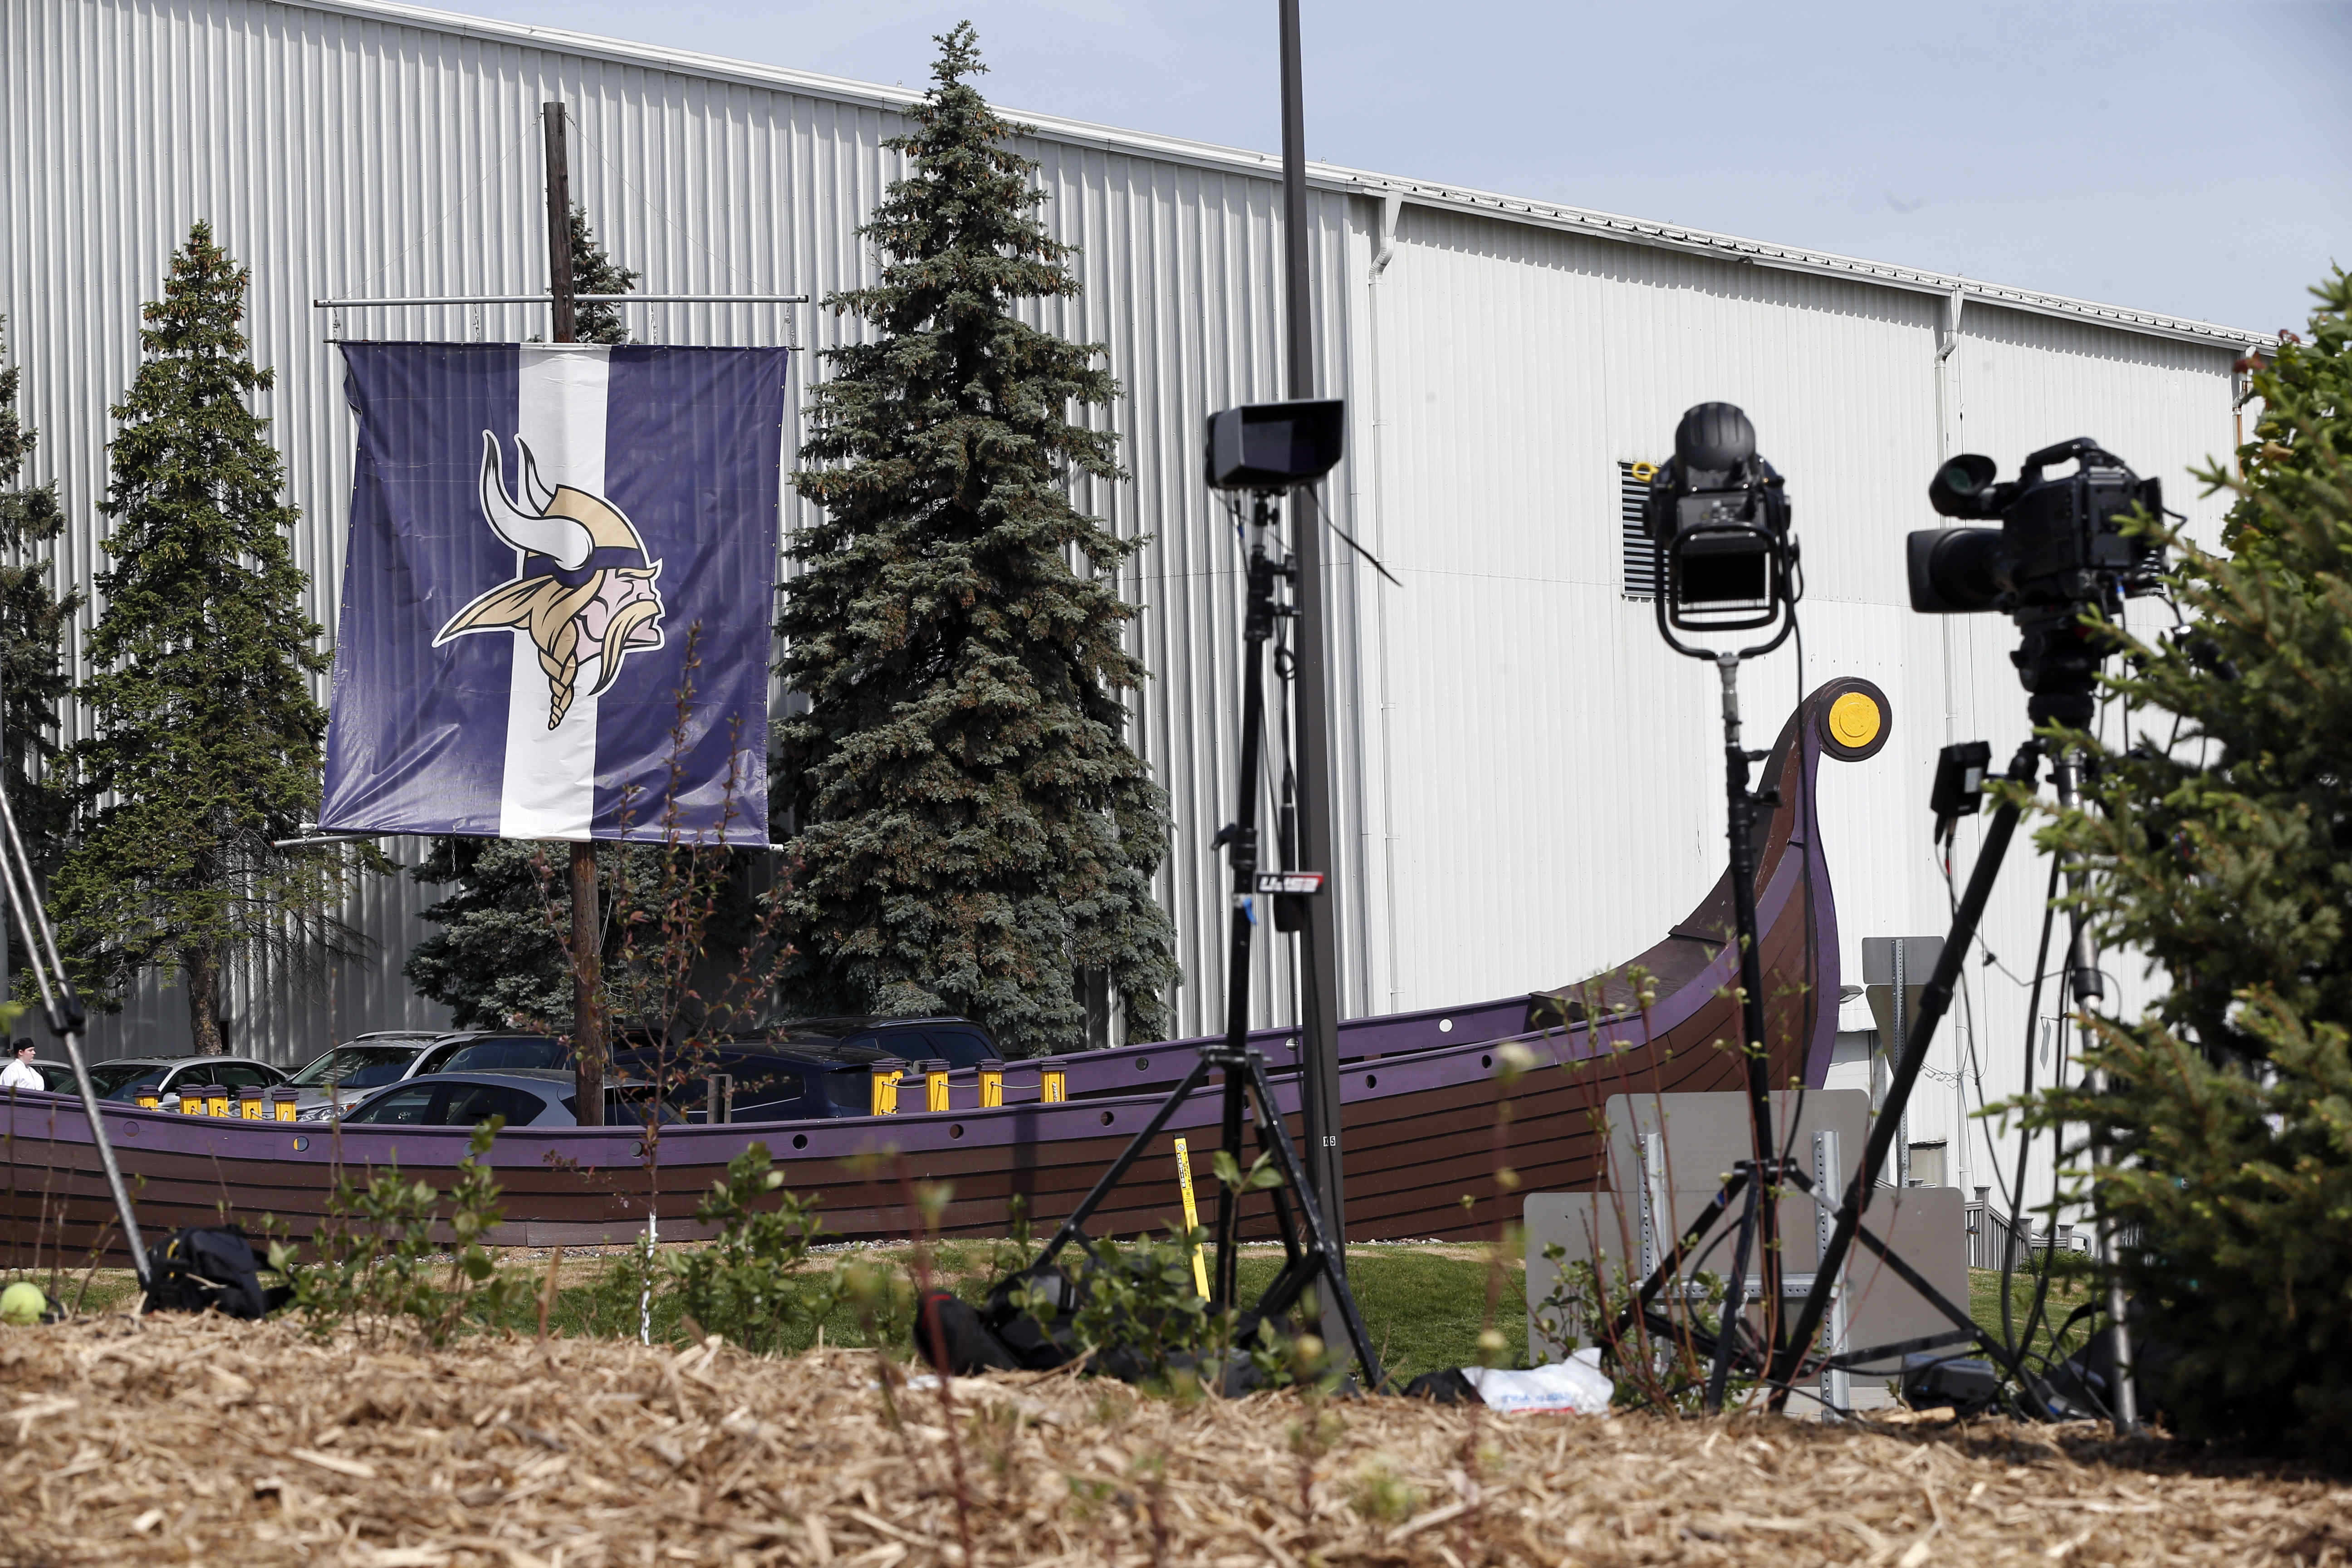 FILE - In this June 2, 2015 file photo, the Minnesota Vikings logo is attached to the mast of the Vikings'  ship outside the team's NFL football headquarters in Eden Prairie, Minn.The Vikings, already bound for a glitzy new stadium, could have another mov